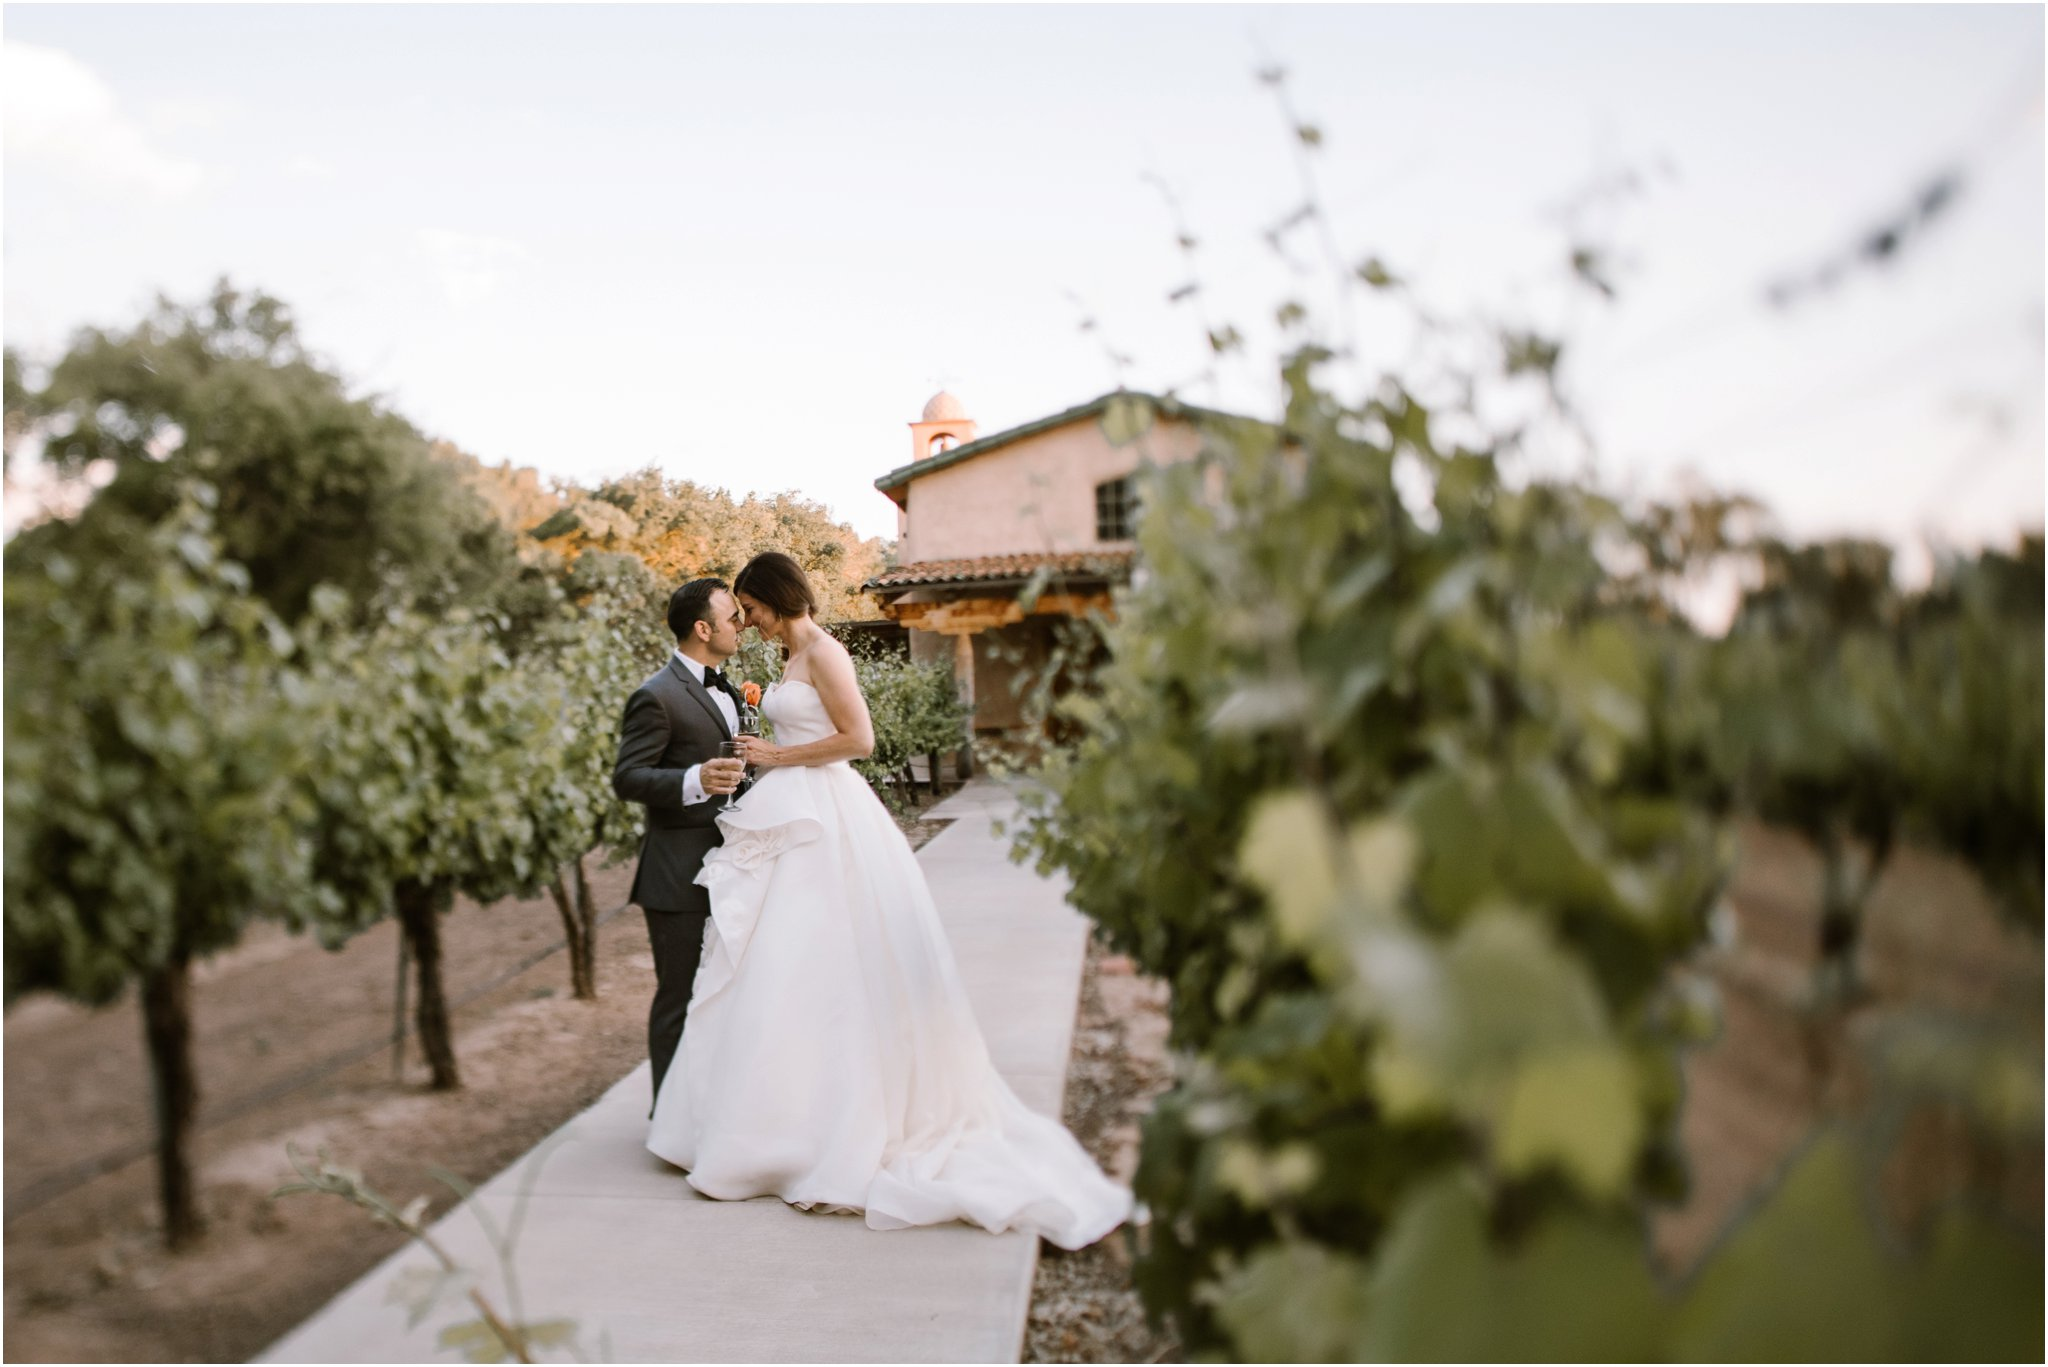 0233Casa Rodena Winery Wedding, Inn and Spa at Loretto wedding, Santa Fe wedding photographers, blue rose photography